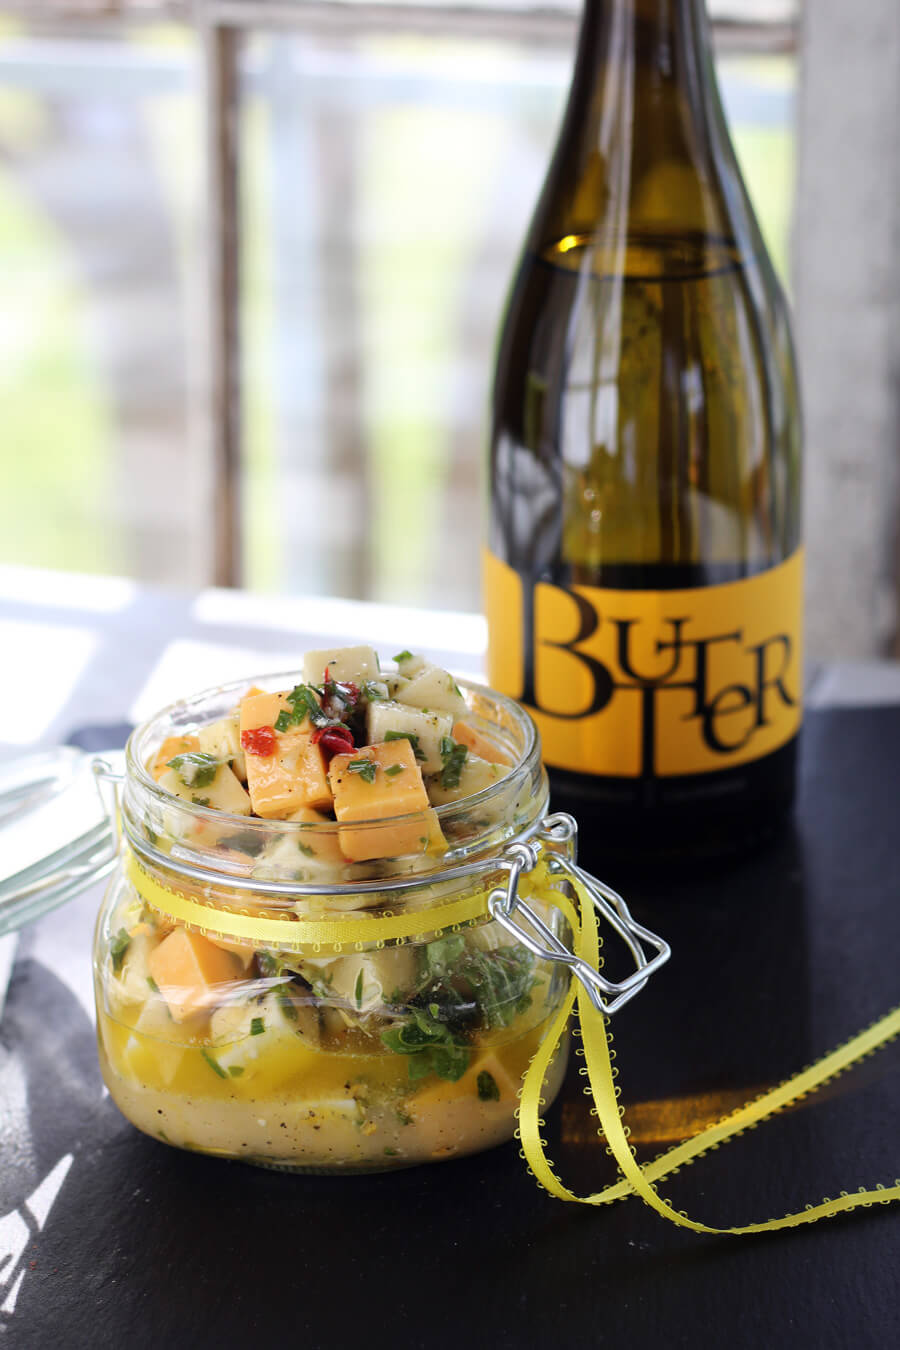 A bottle of Butter Chardonnay from JaM Cellars and a gift jar of marinated cheddar cheese appetizers